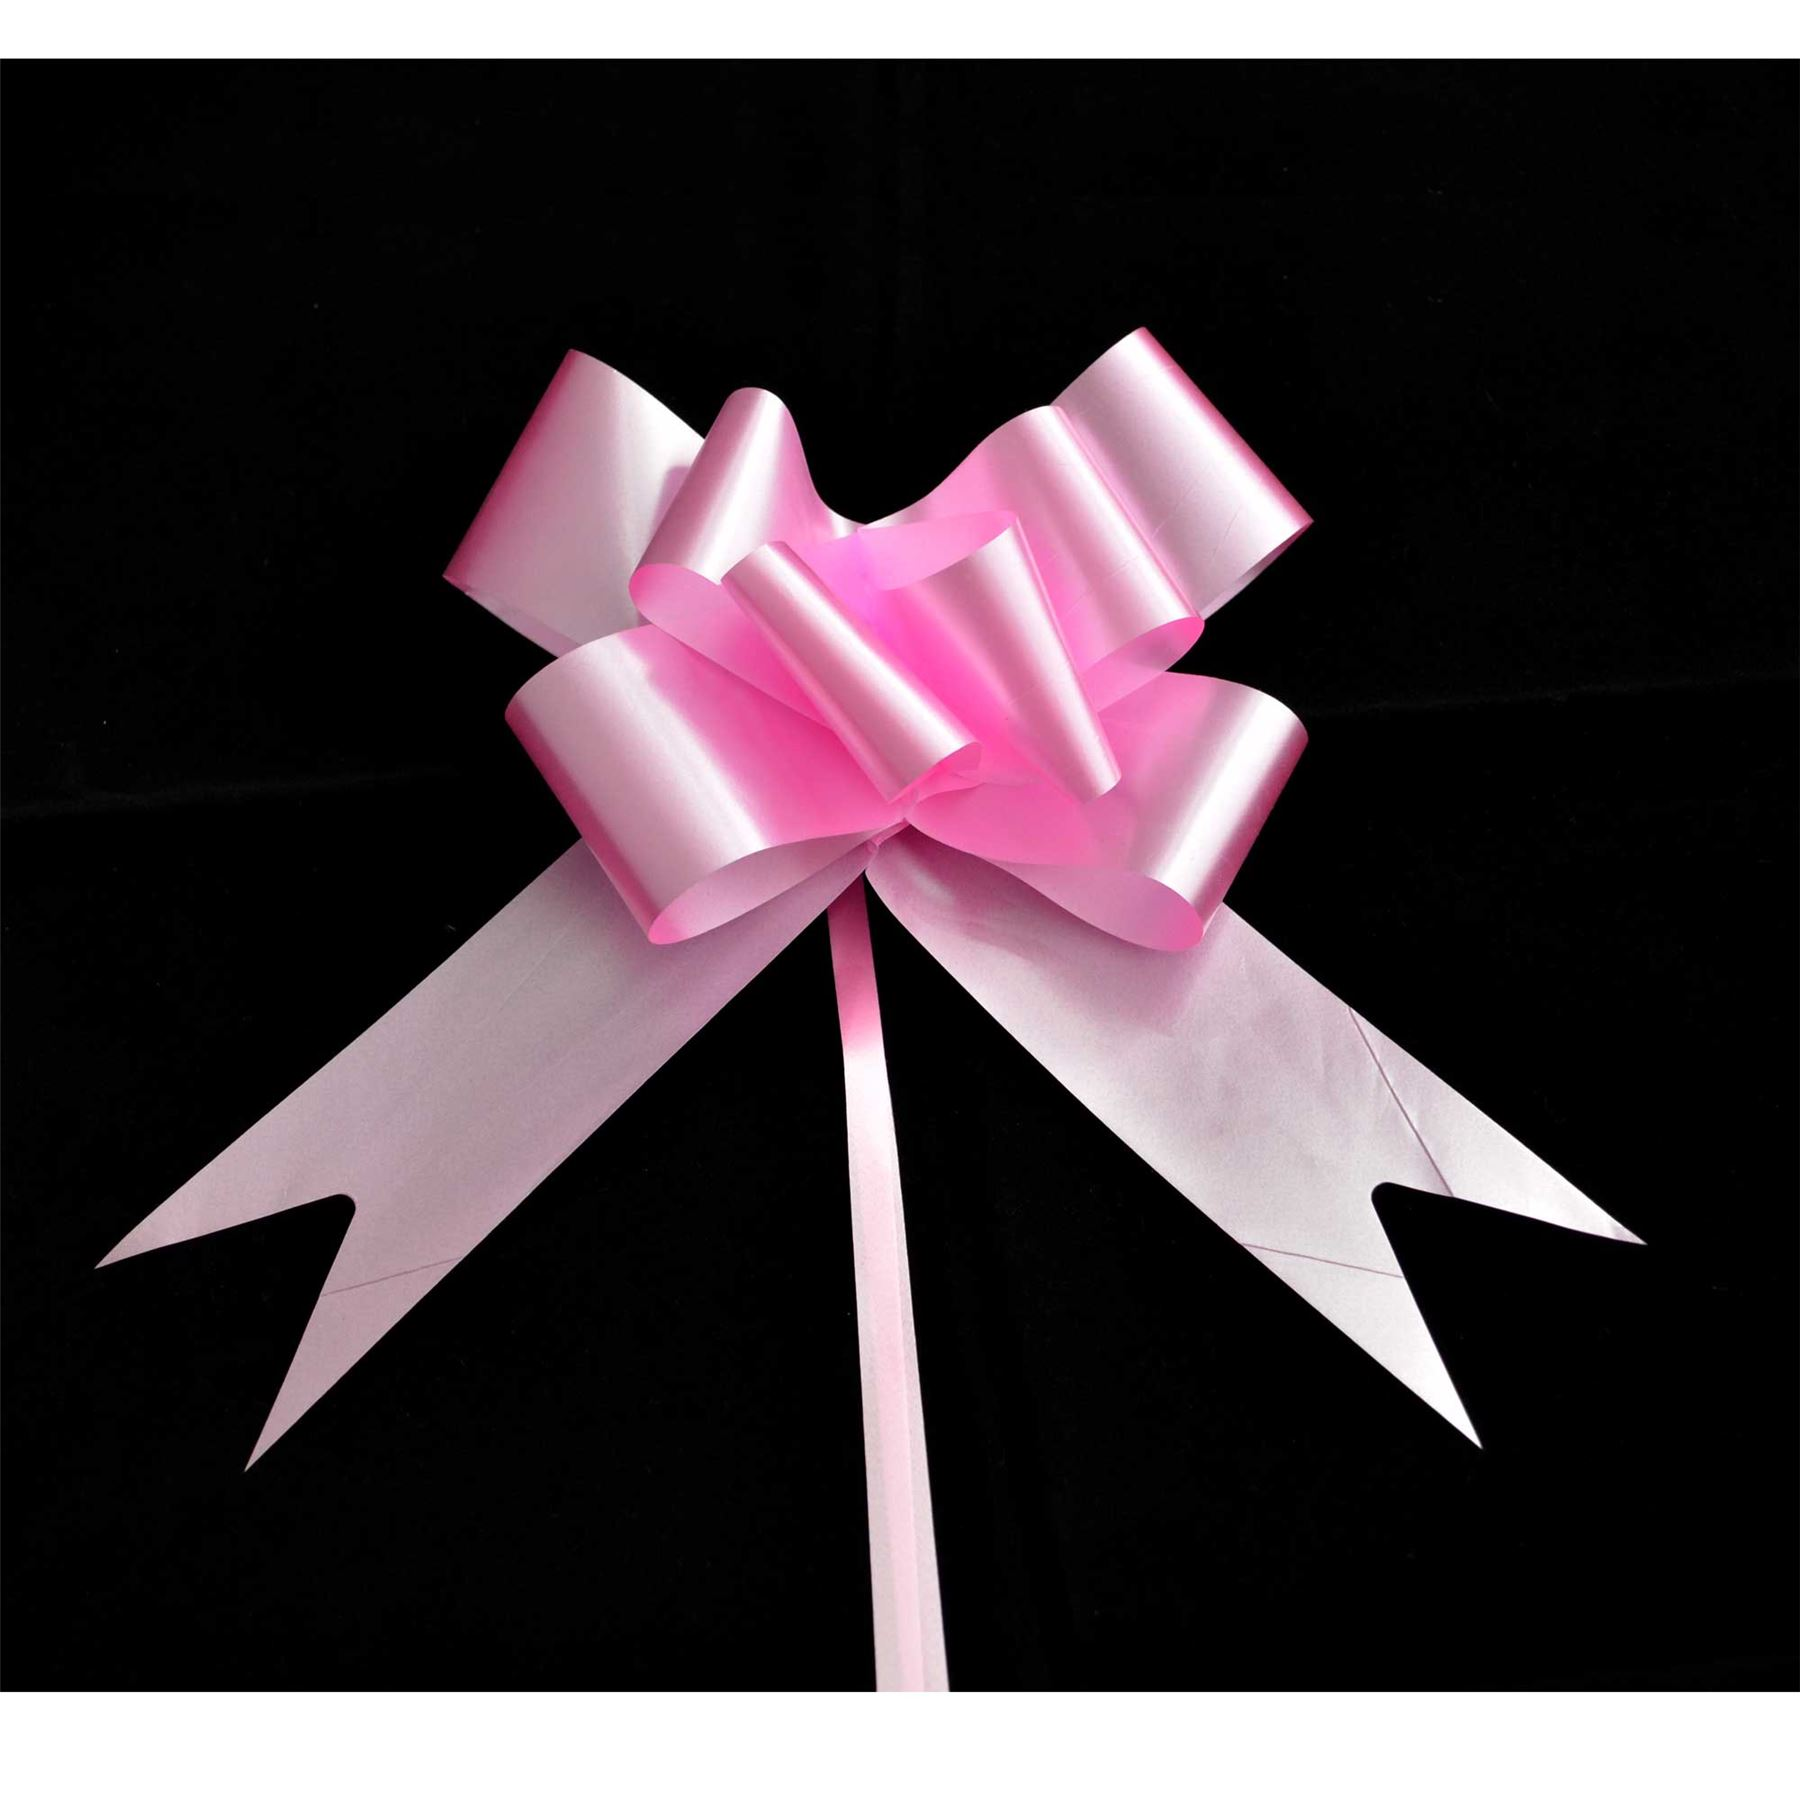 30-50mm PULL BOWS PARTY WEDDING ANNIVERSARY CHRISTMAS GIFT WRAP ...